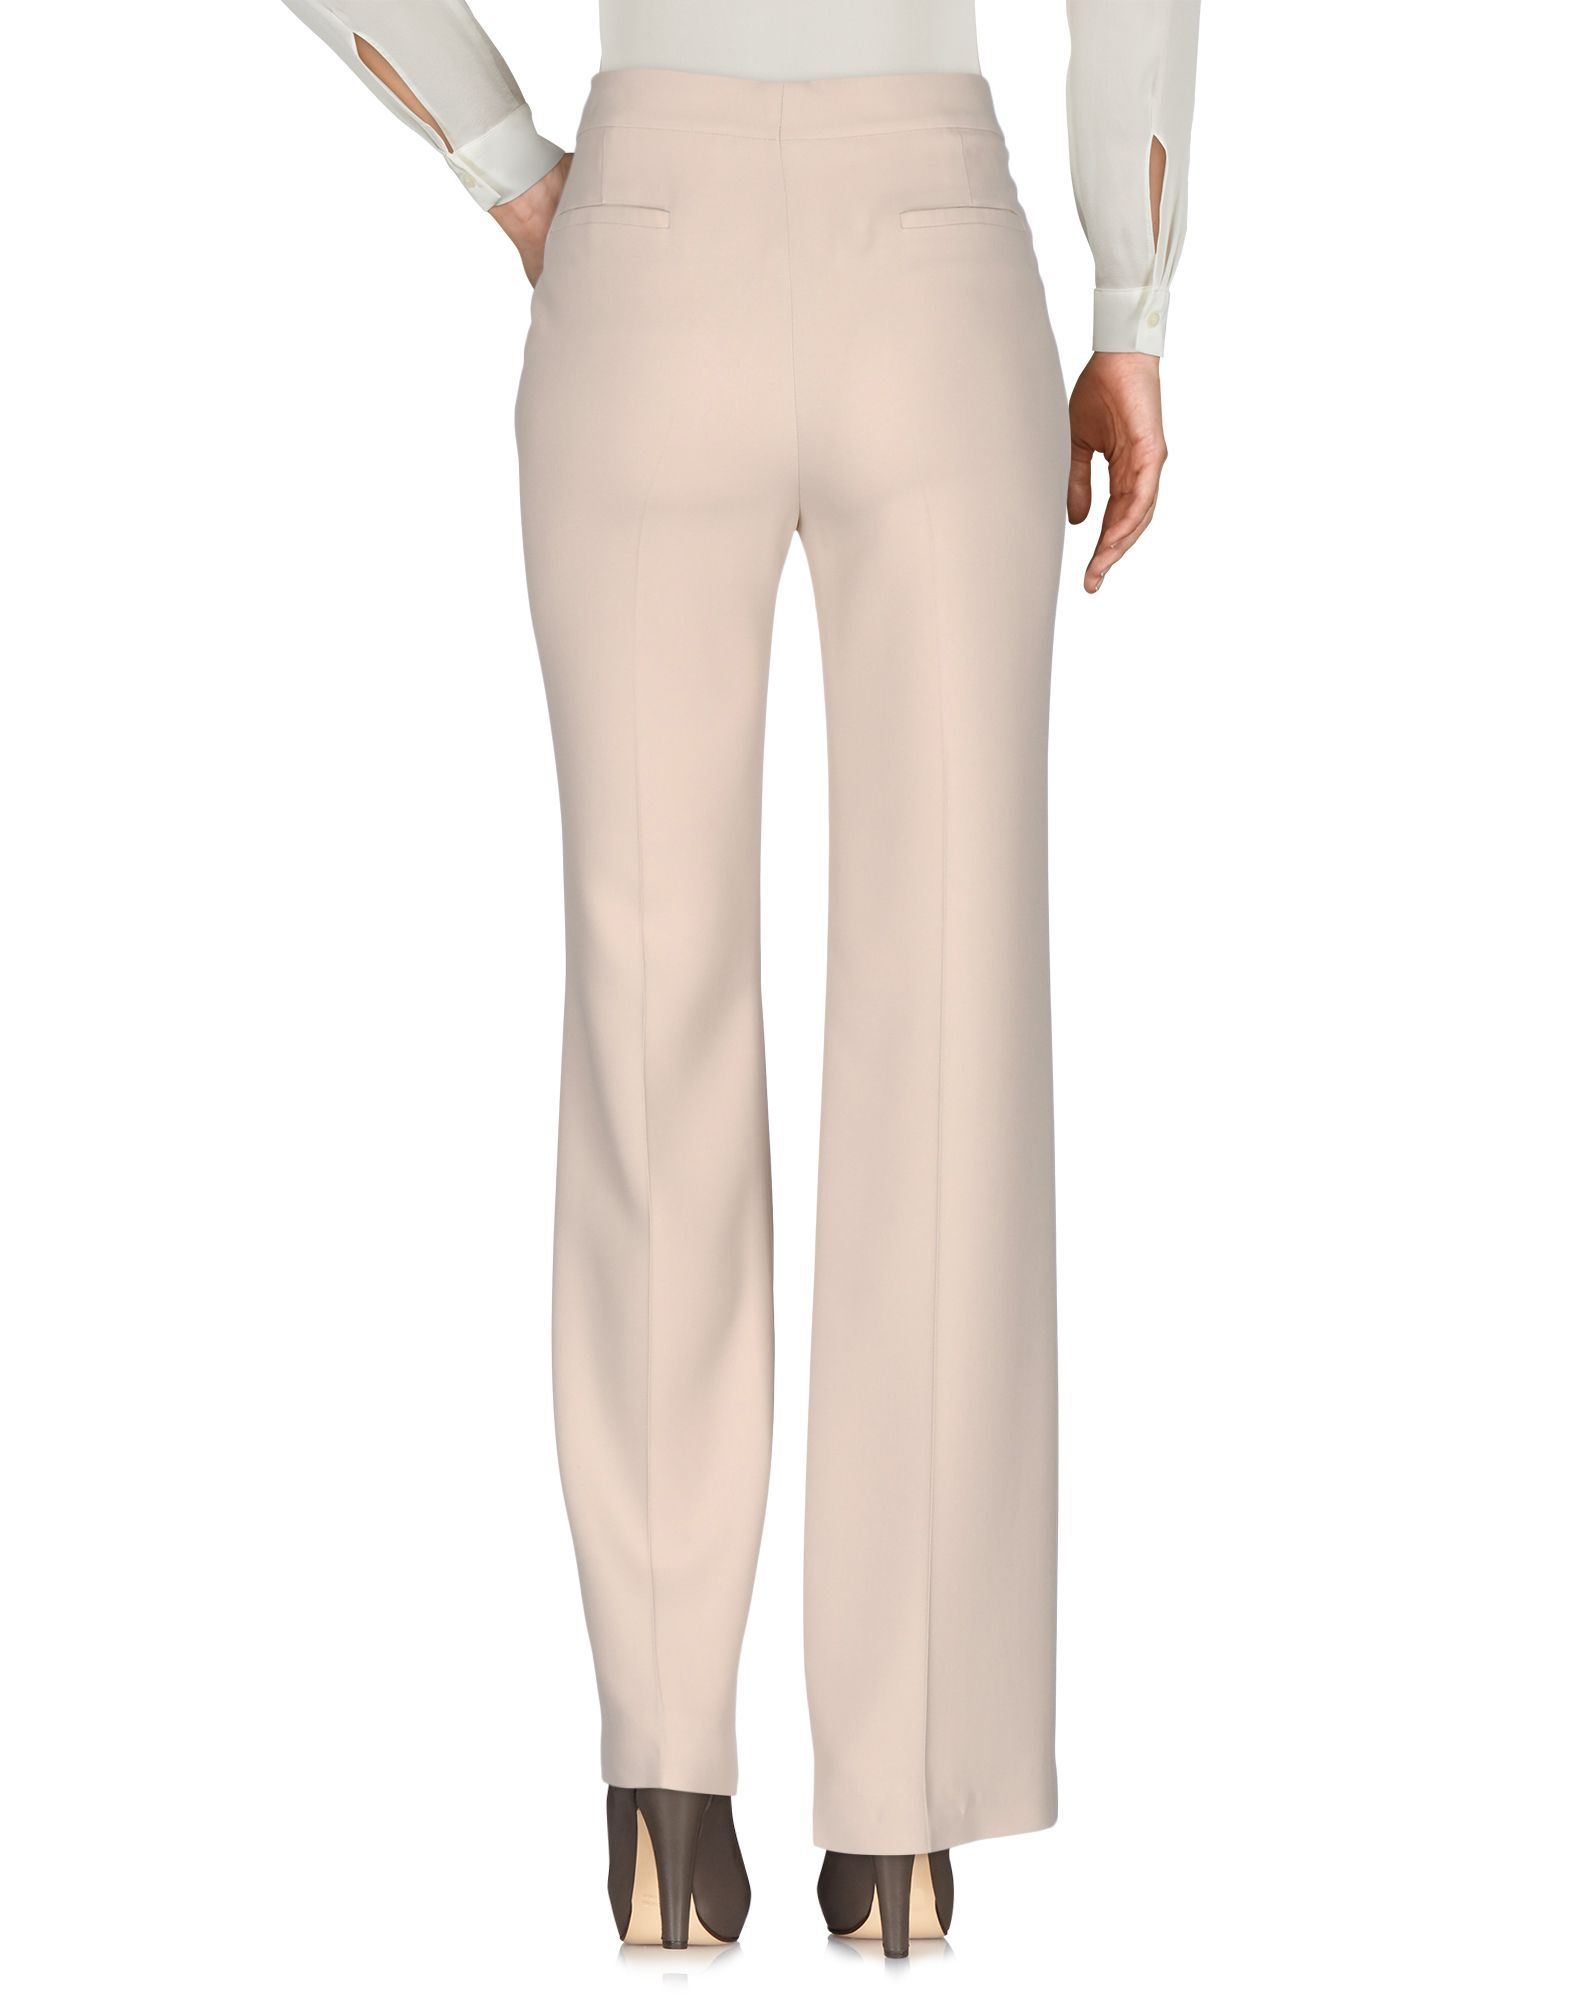 Chloe Beige High Waisted Tailored Trousers